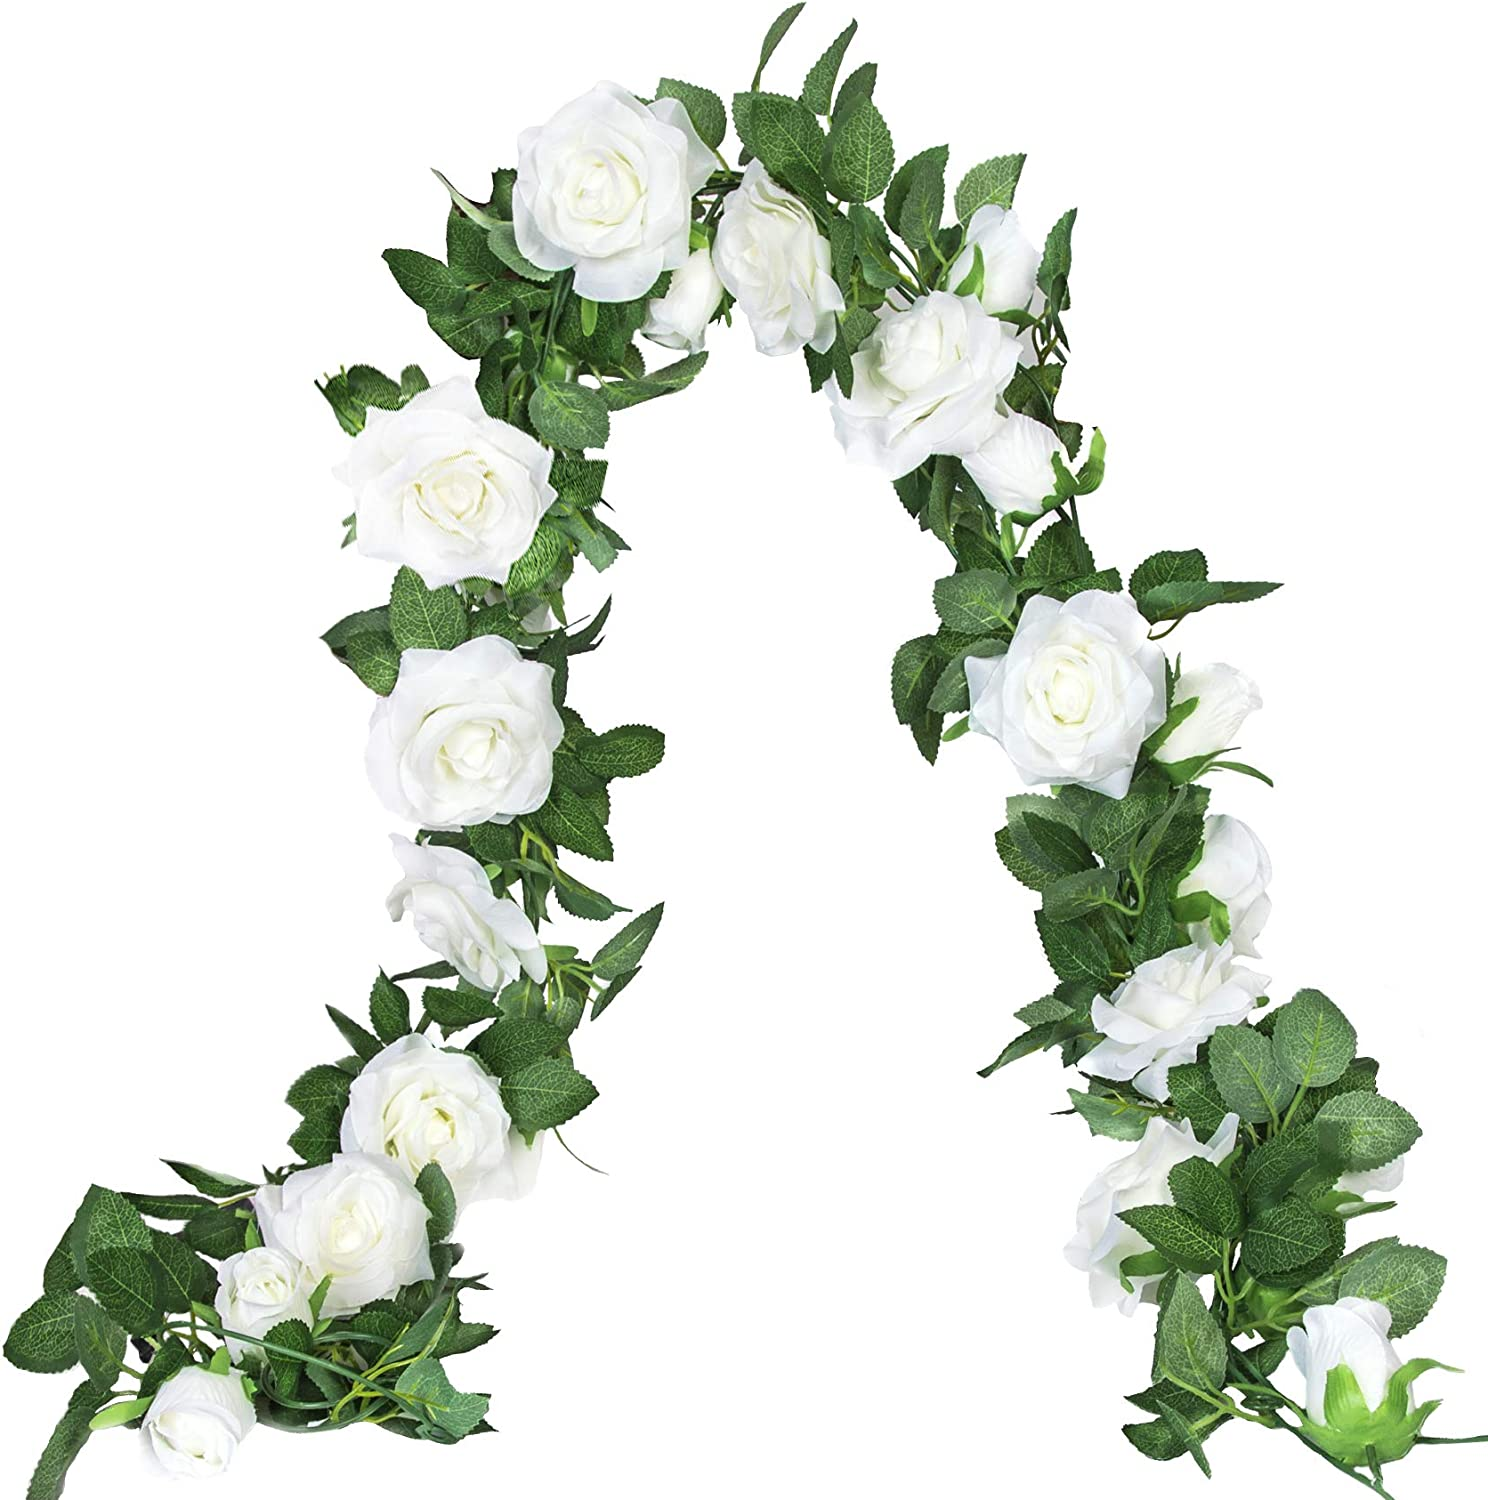 2 Pack Artificial Rose Vine Fake Flower Garland Silk Roses Floral Garland Hanging Flowers for Wedding Arch Backdrop Garden Home Wall Decor (White)